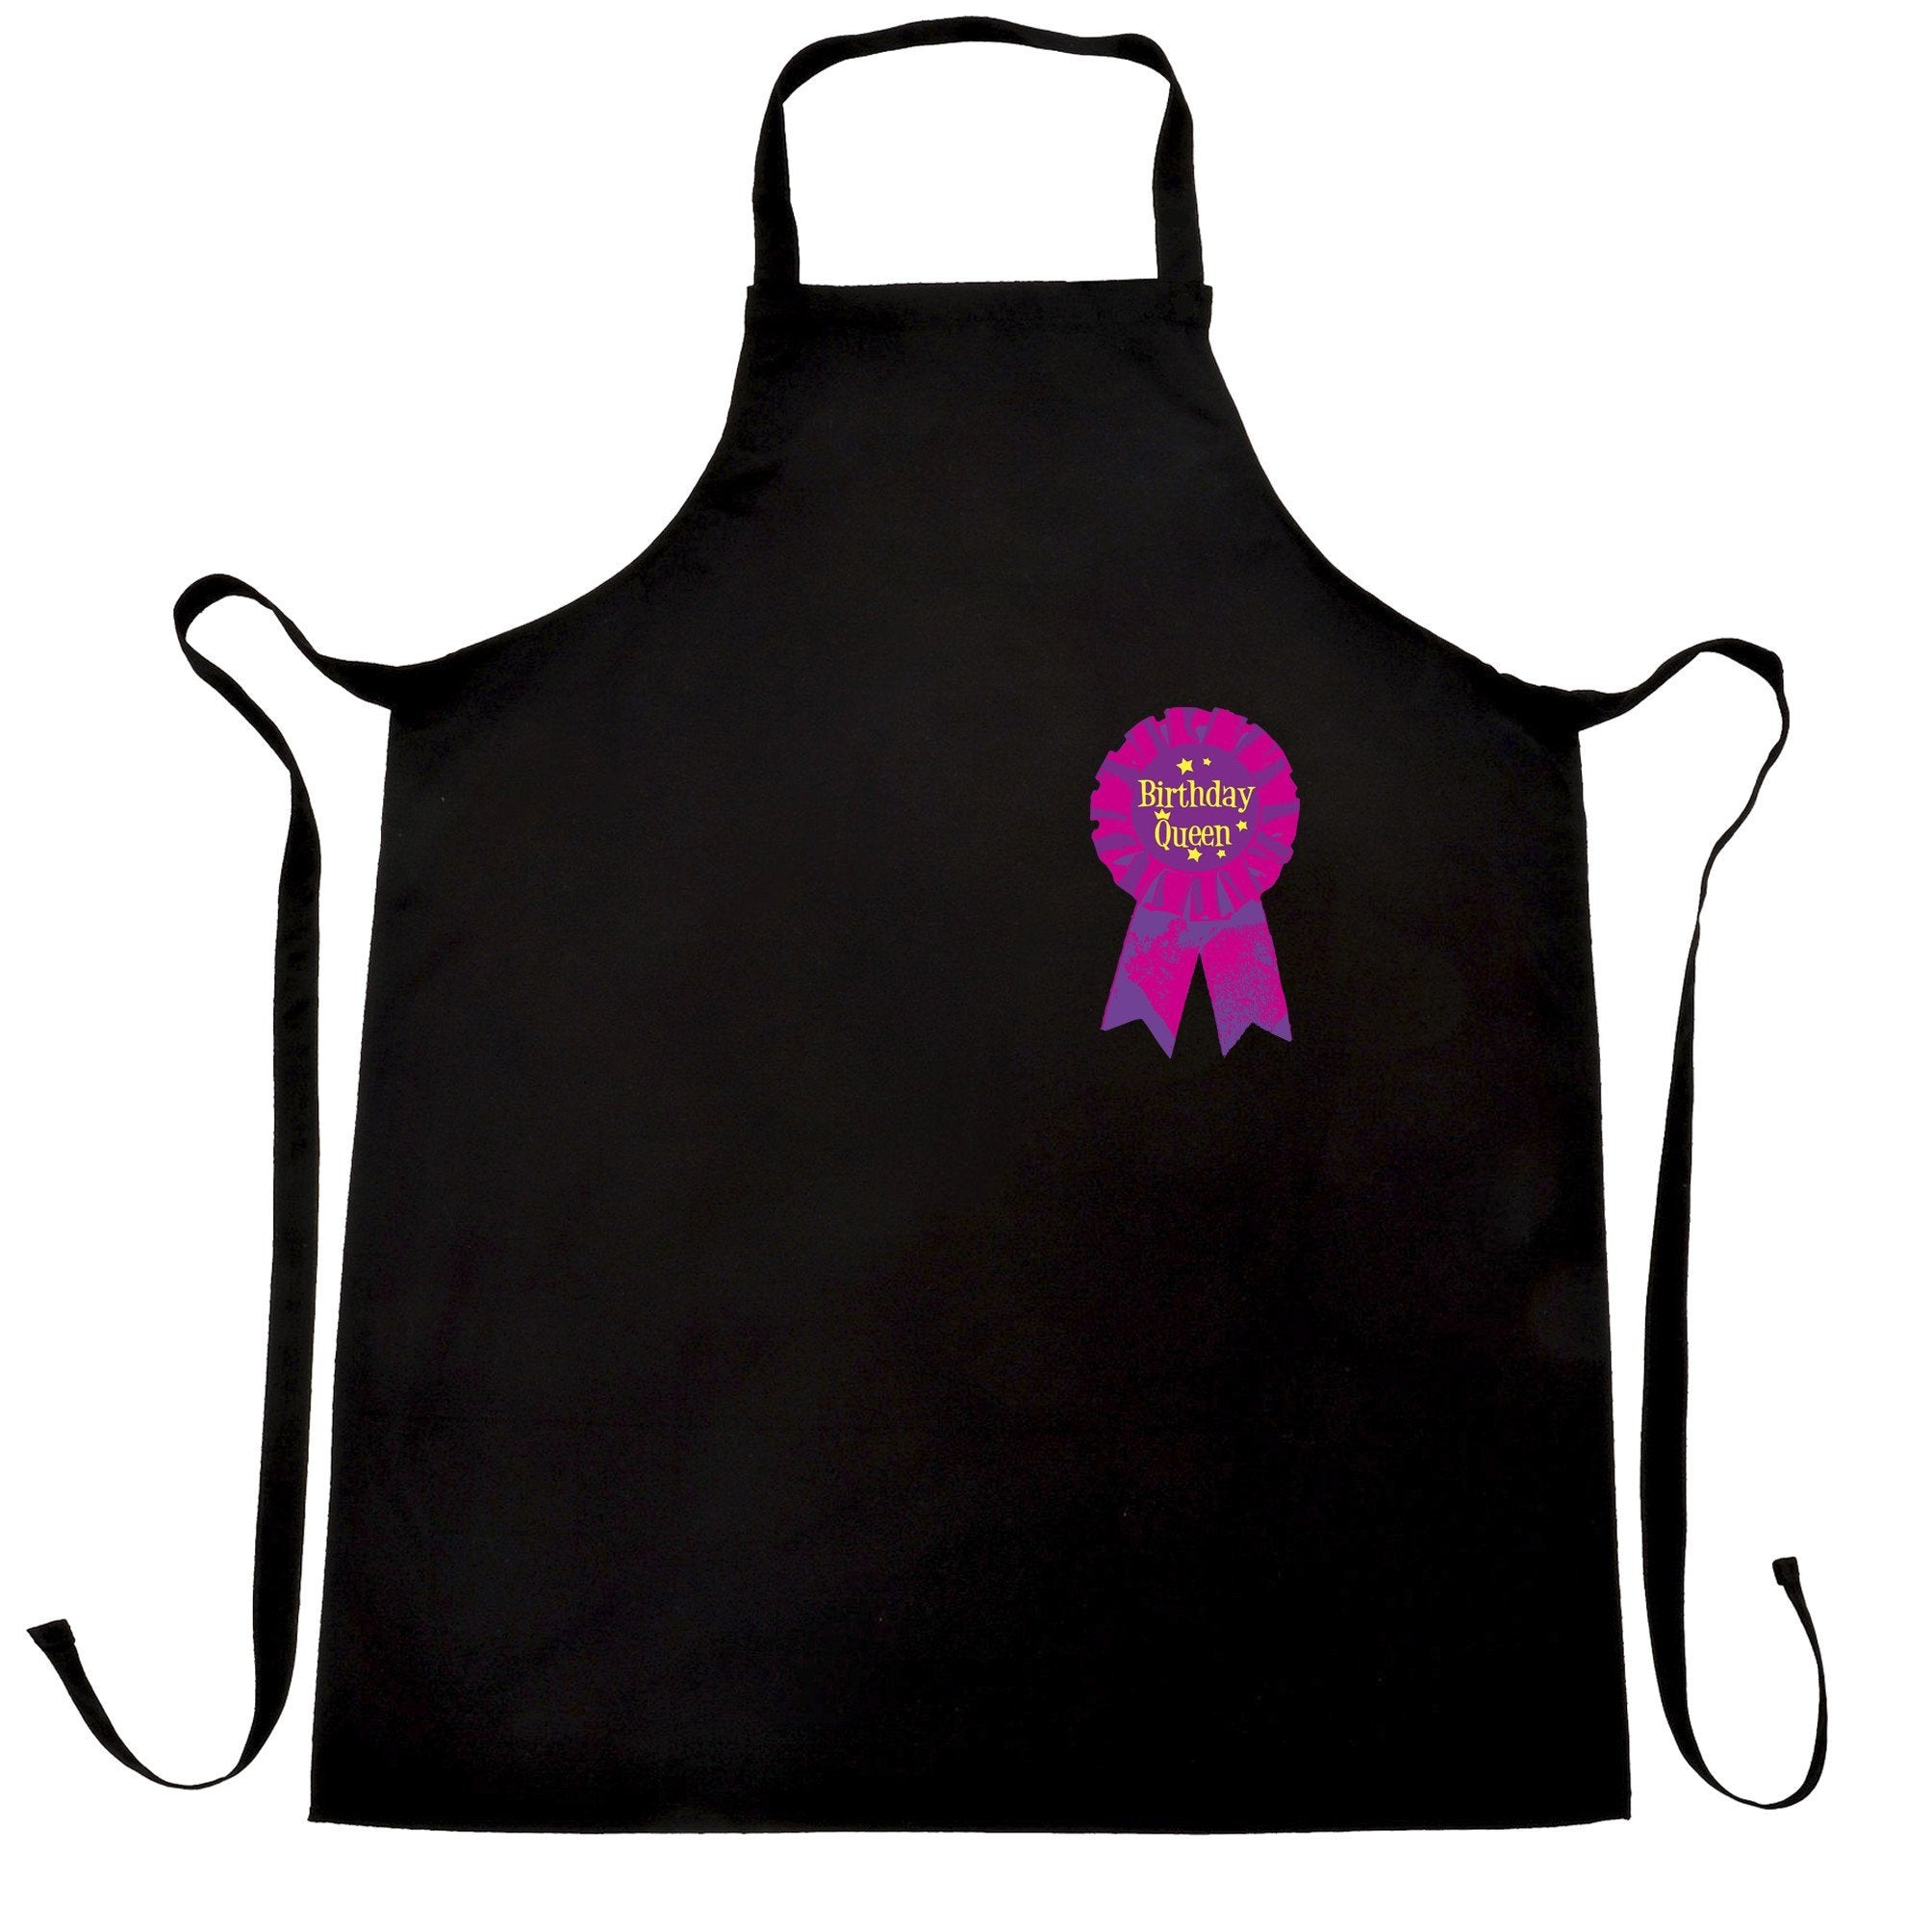 Novelty Party Chef's Apron Birthday Girl Pocket Print Badge